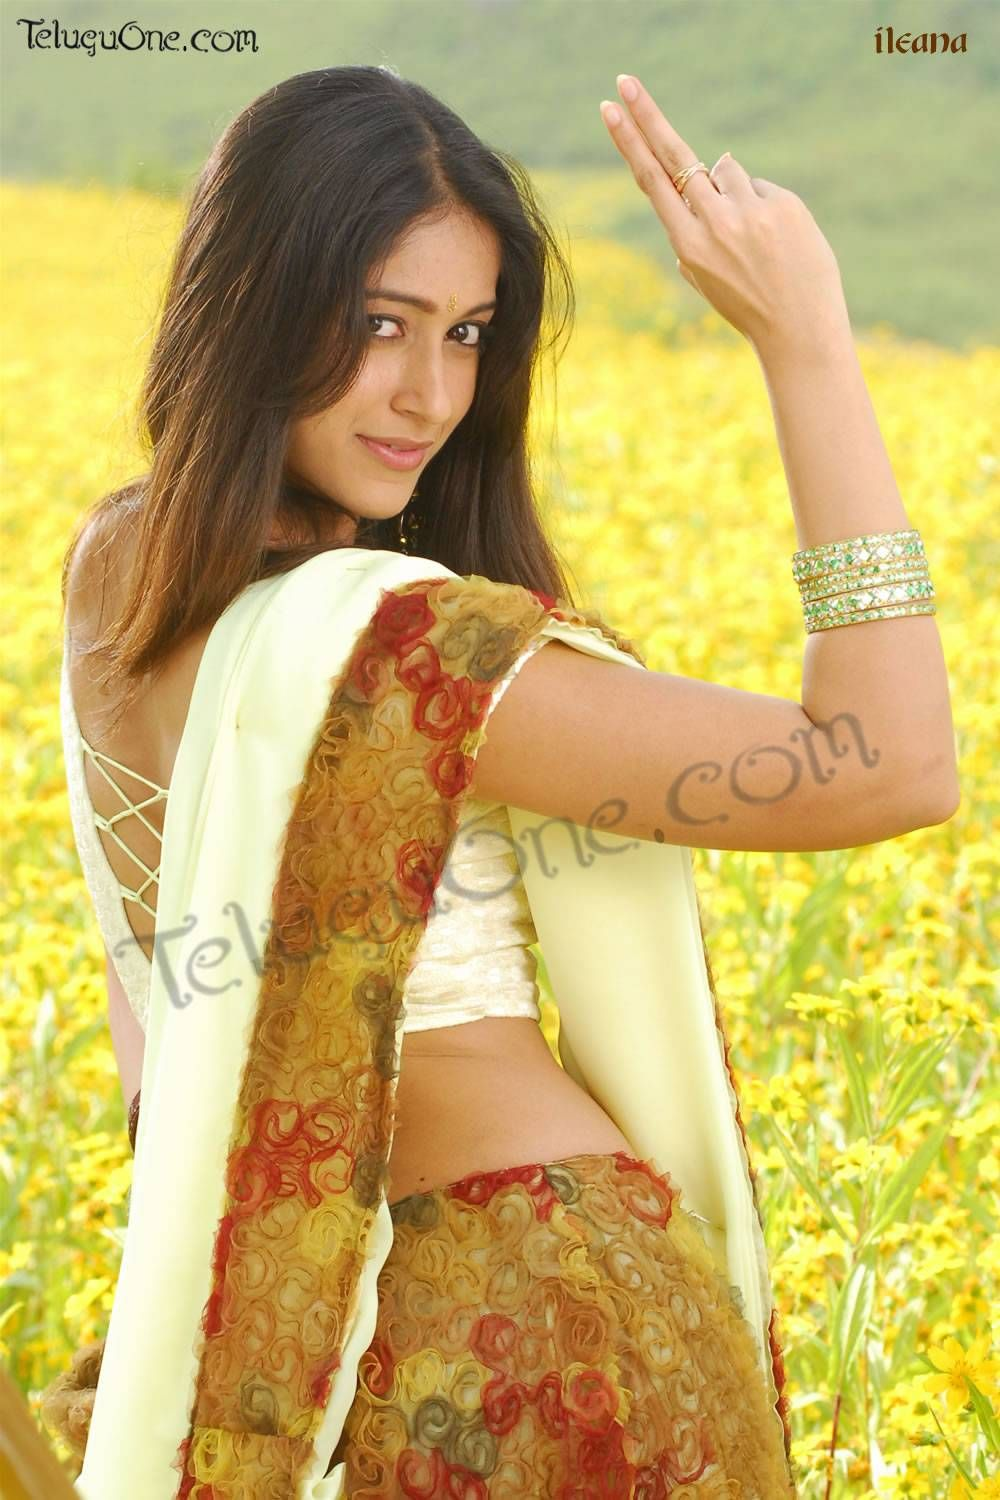 there's a subtle texture on this one, very elegant.  http://www.sareedreams.com/wp-content/uploads/2008/05/creme-saree-blouse.jpg